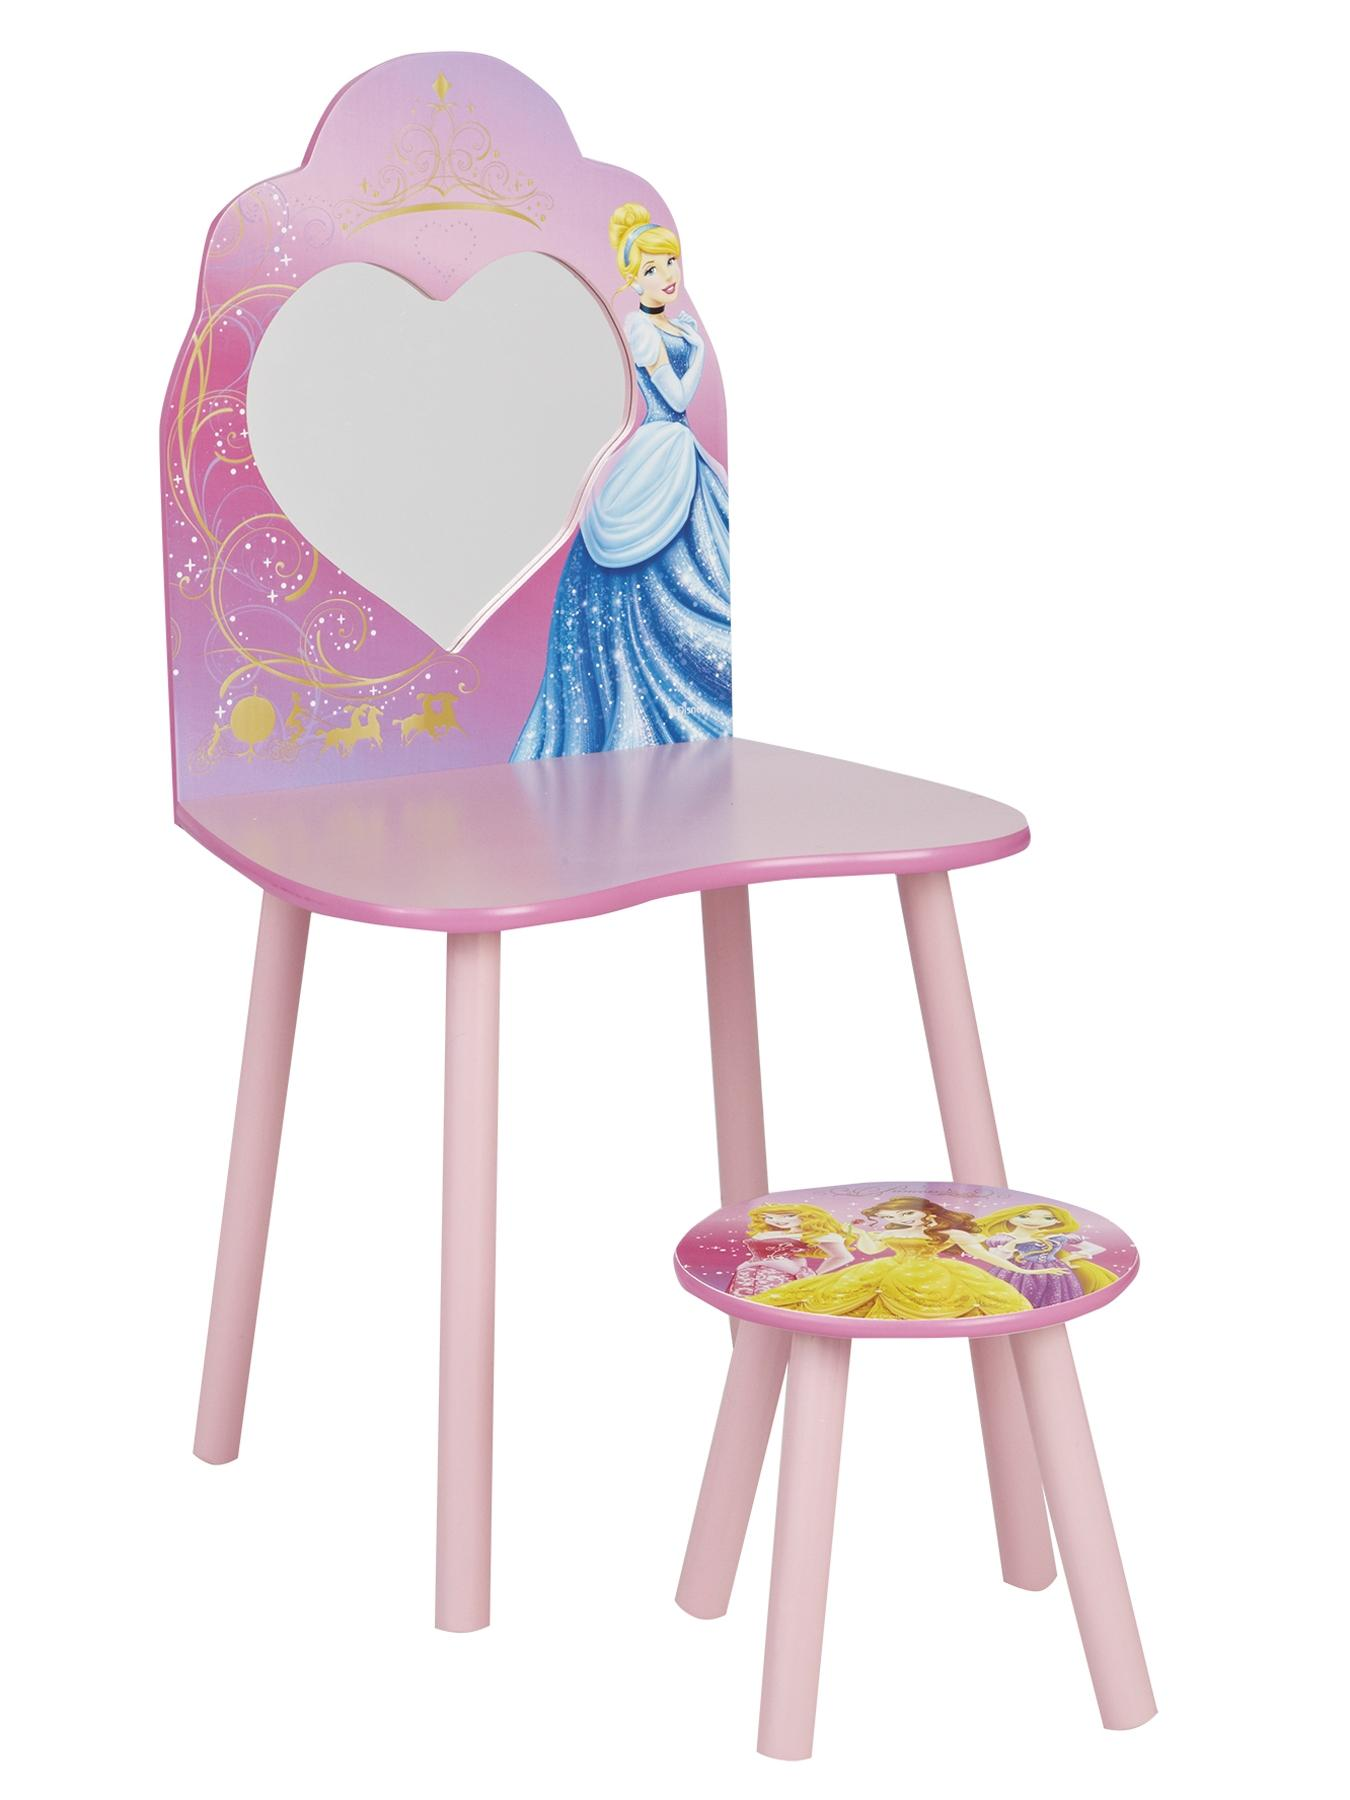 Vanity Dressing Table and Chair, Pink